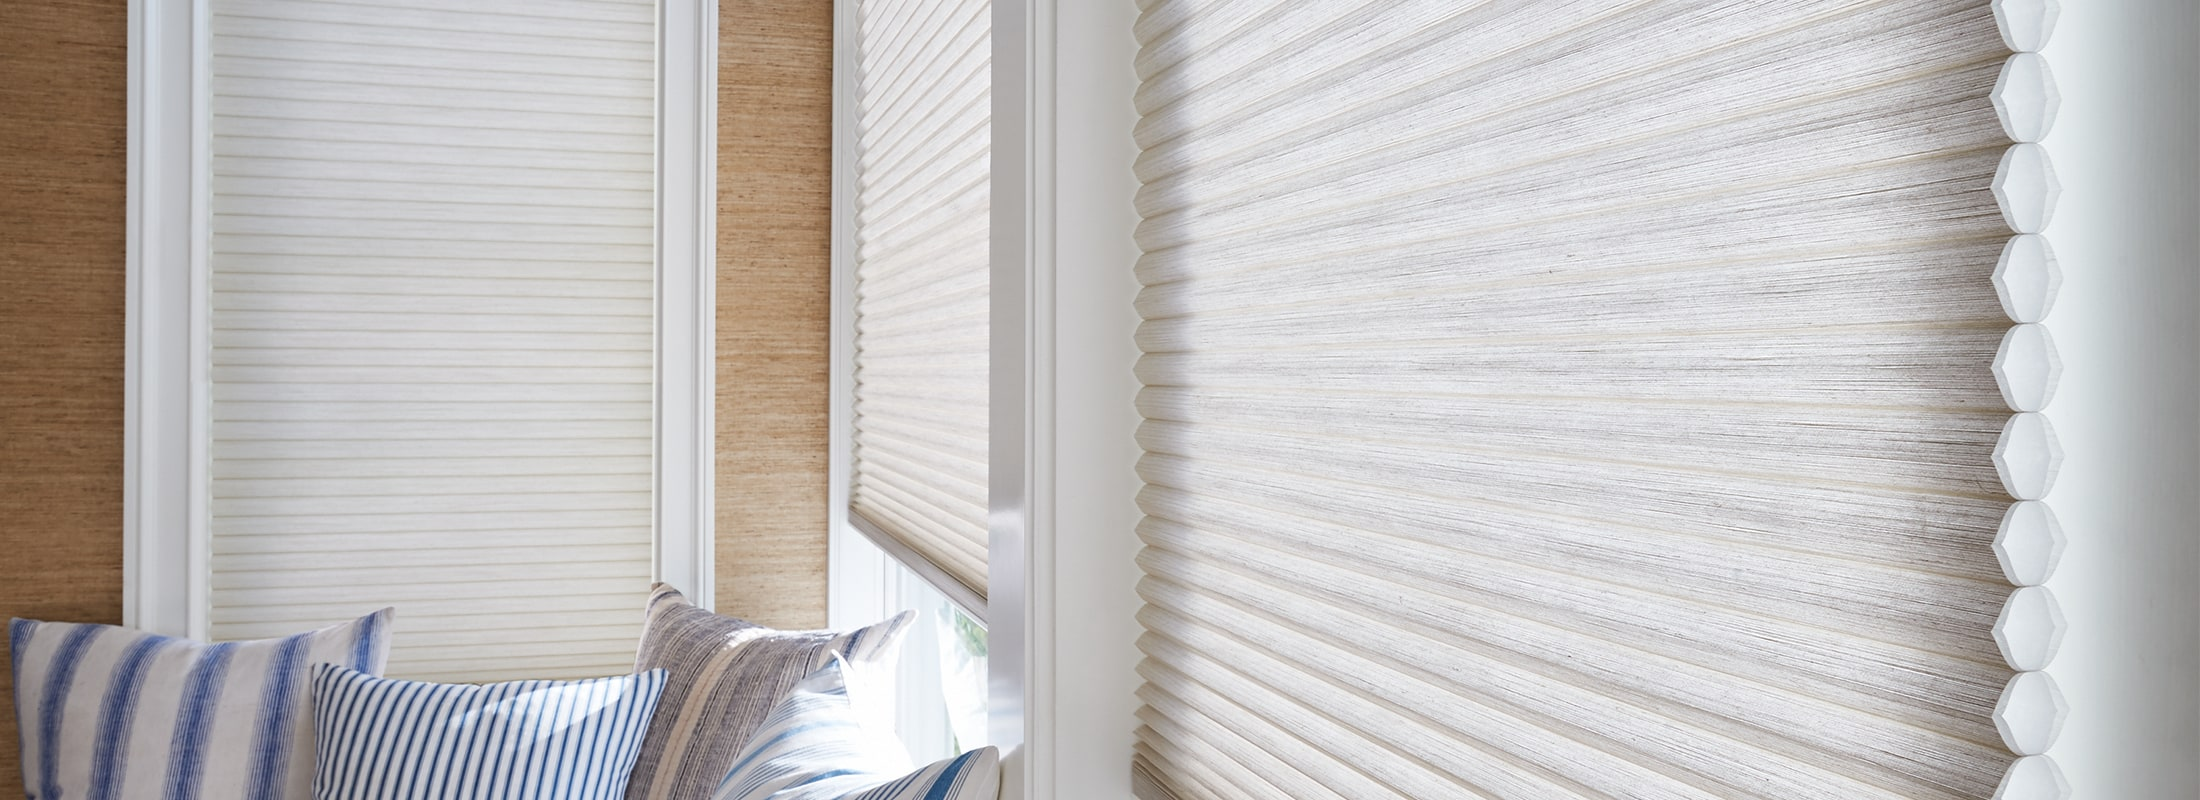 cellular-shades-duette-honeycomb-hunter-douglas